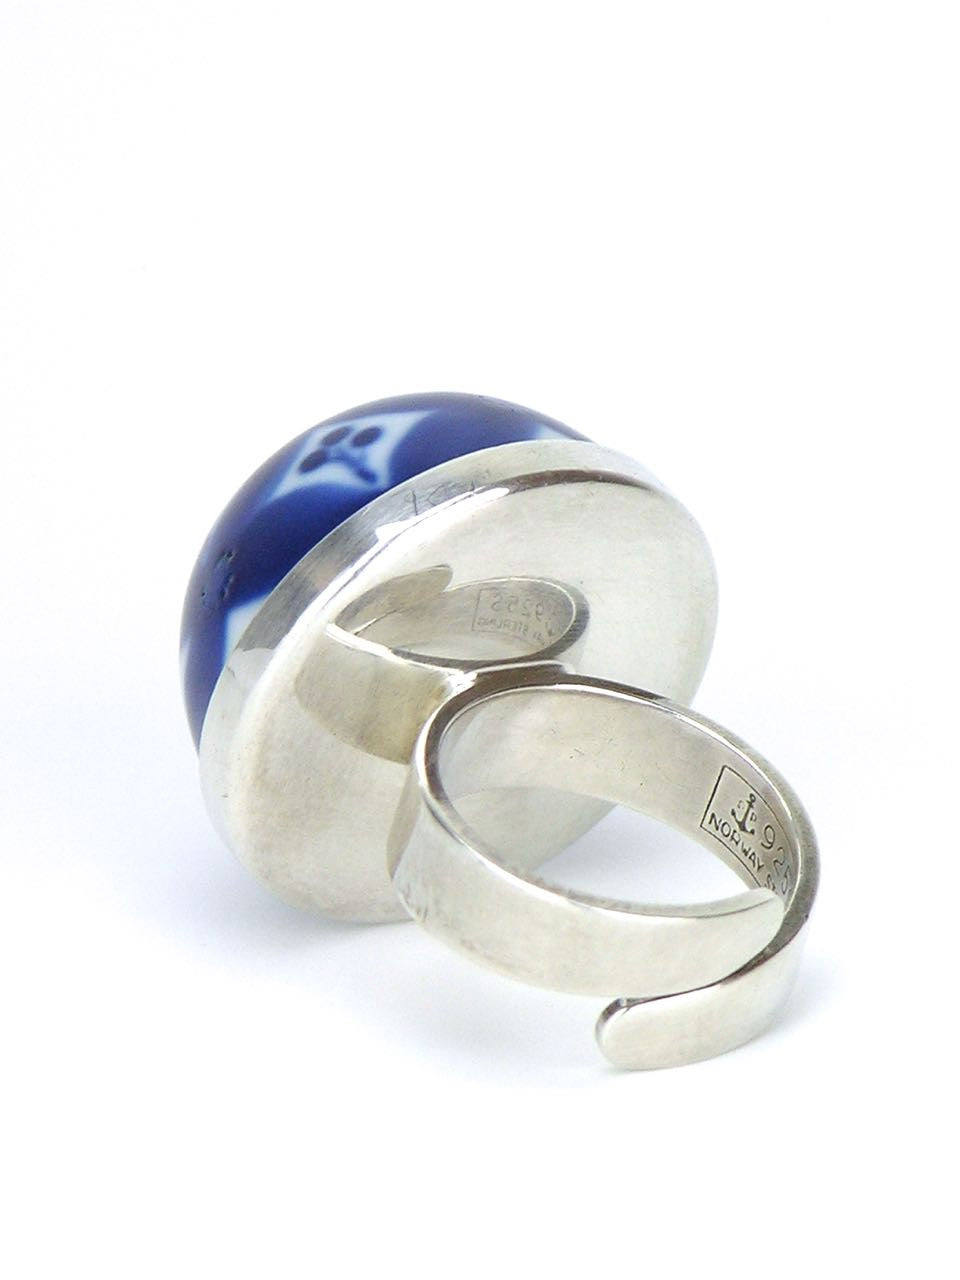 Norwegian silver and blue glazed porcelain dome ring